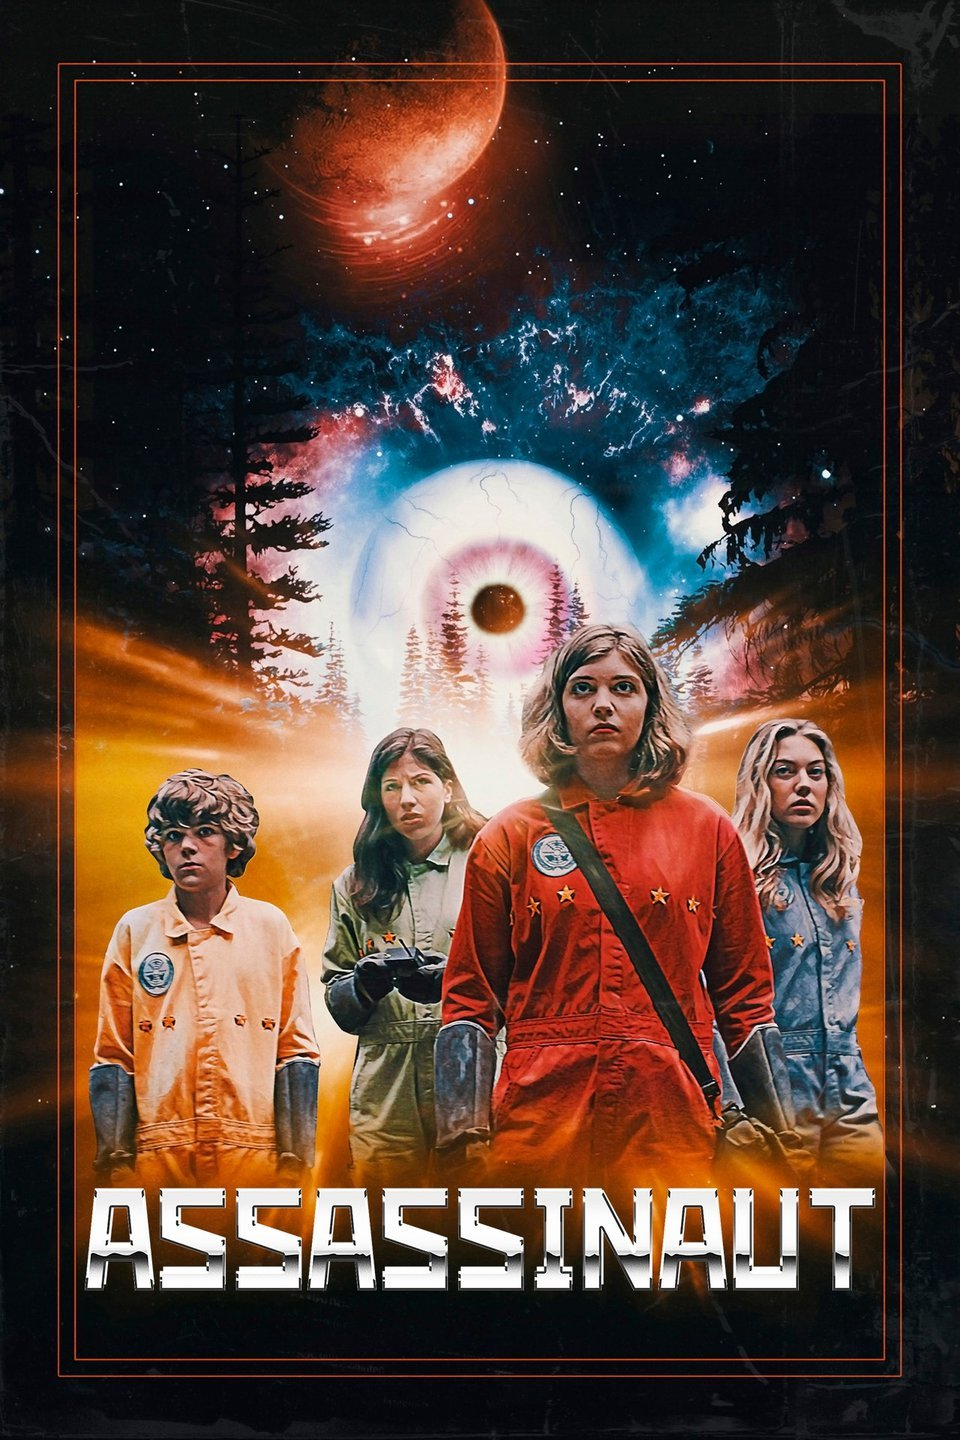 A team of four teenage astronauts braves the alien wilderness of a distant planet to save Earth's president from a deadly assassin.